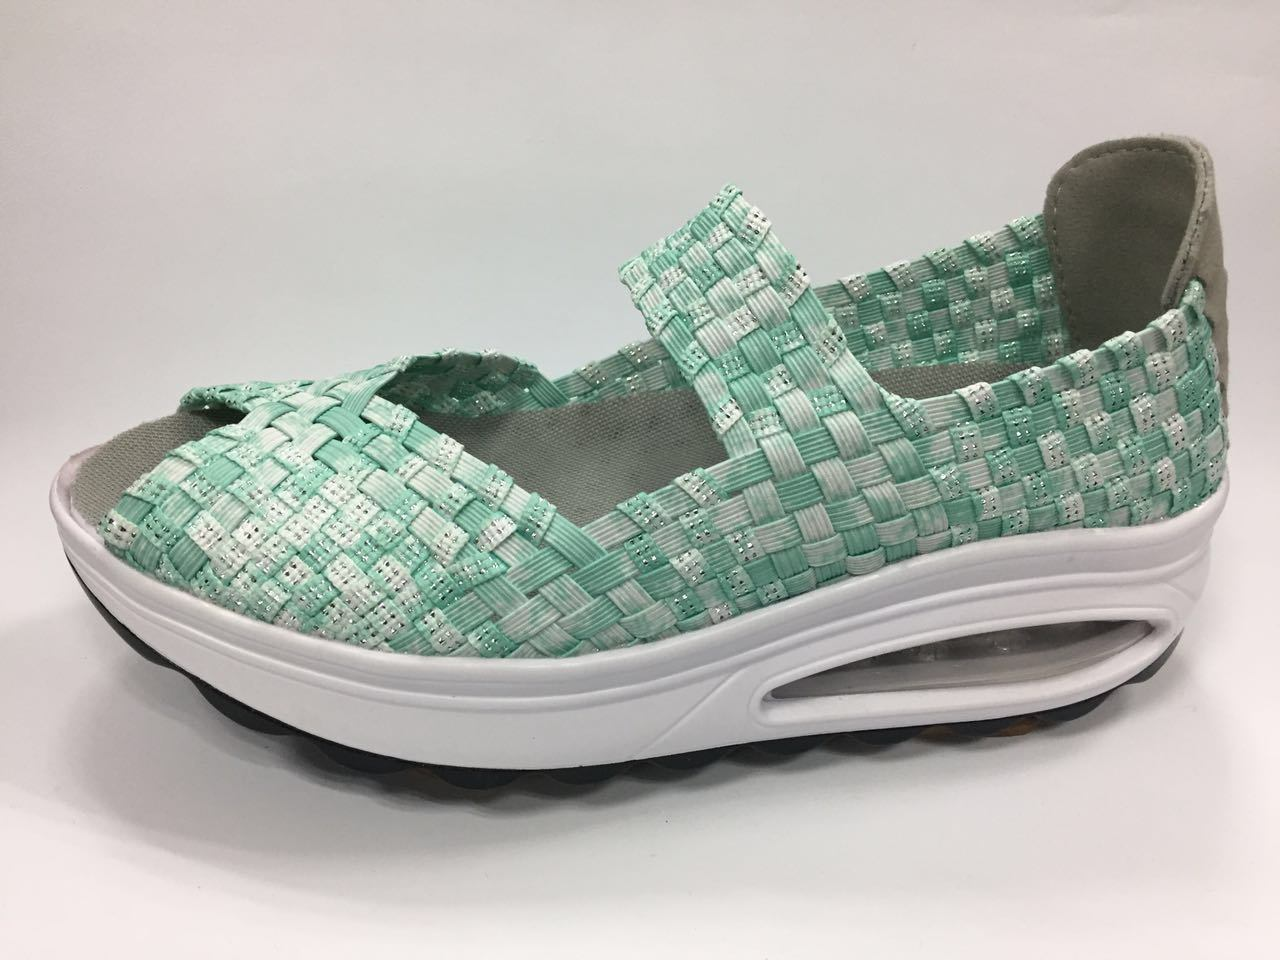 Colourful Woven Shoes for Woman High_Heel Shoes